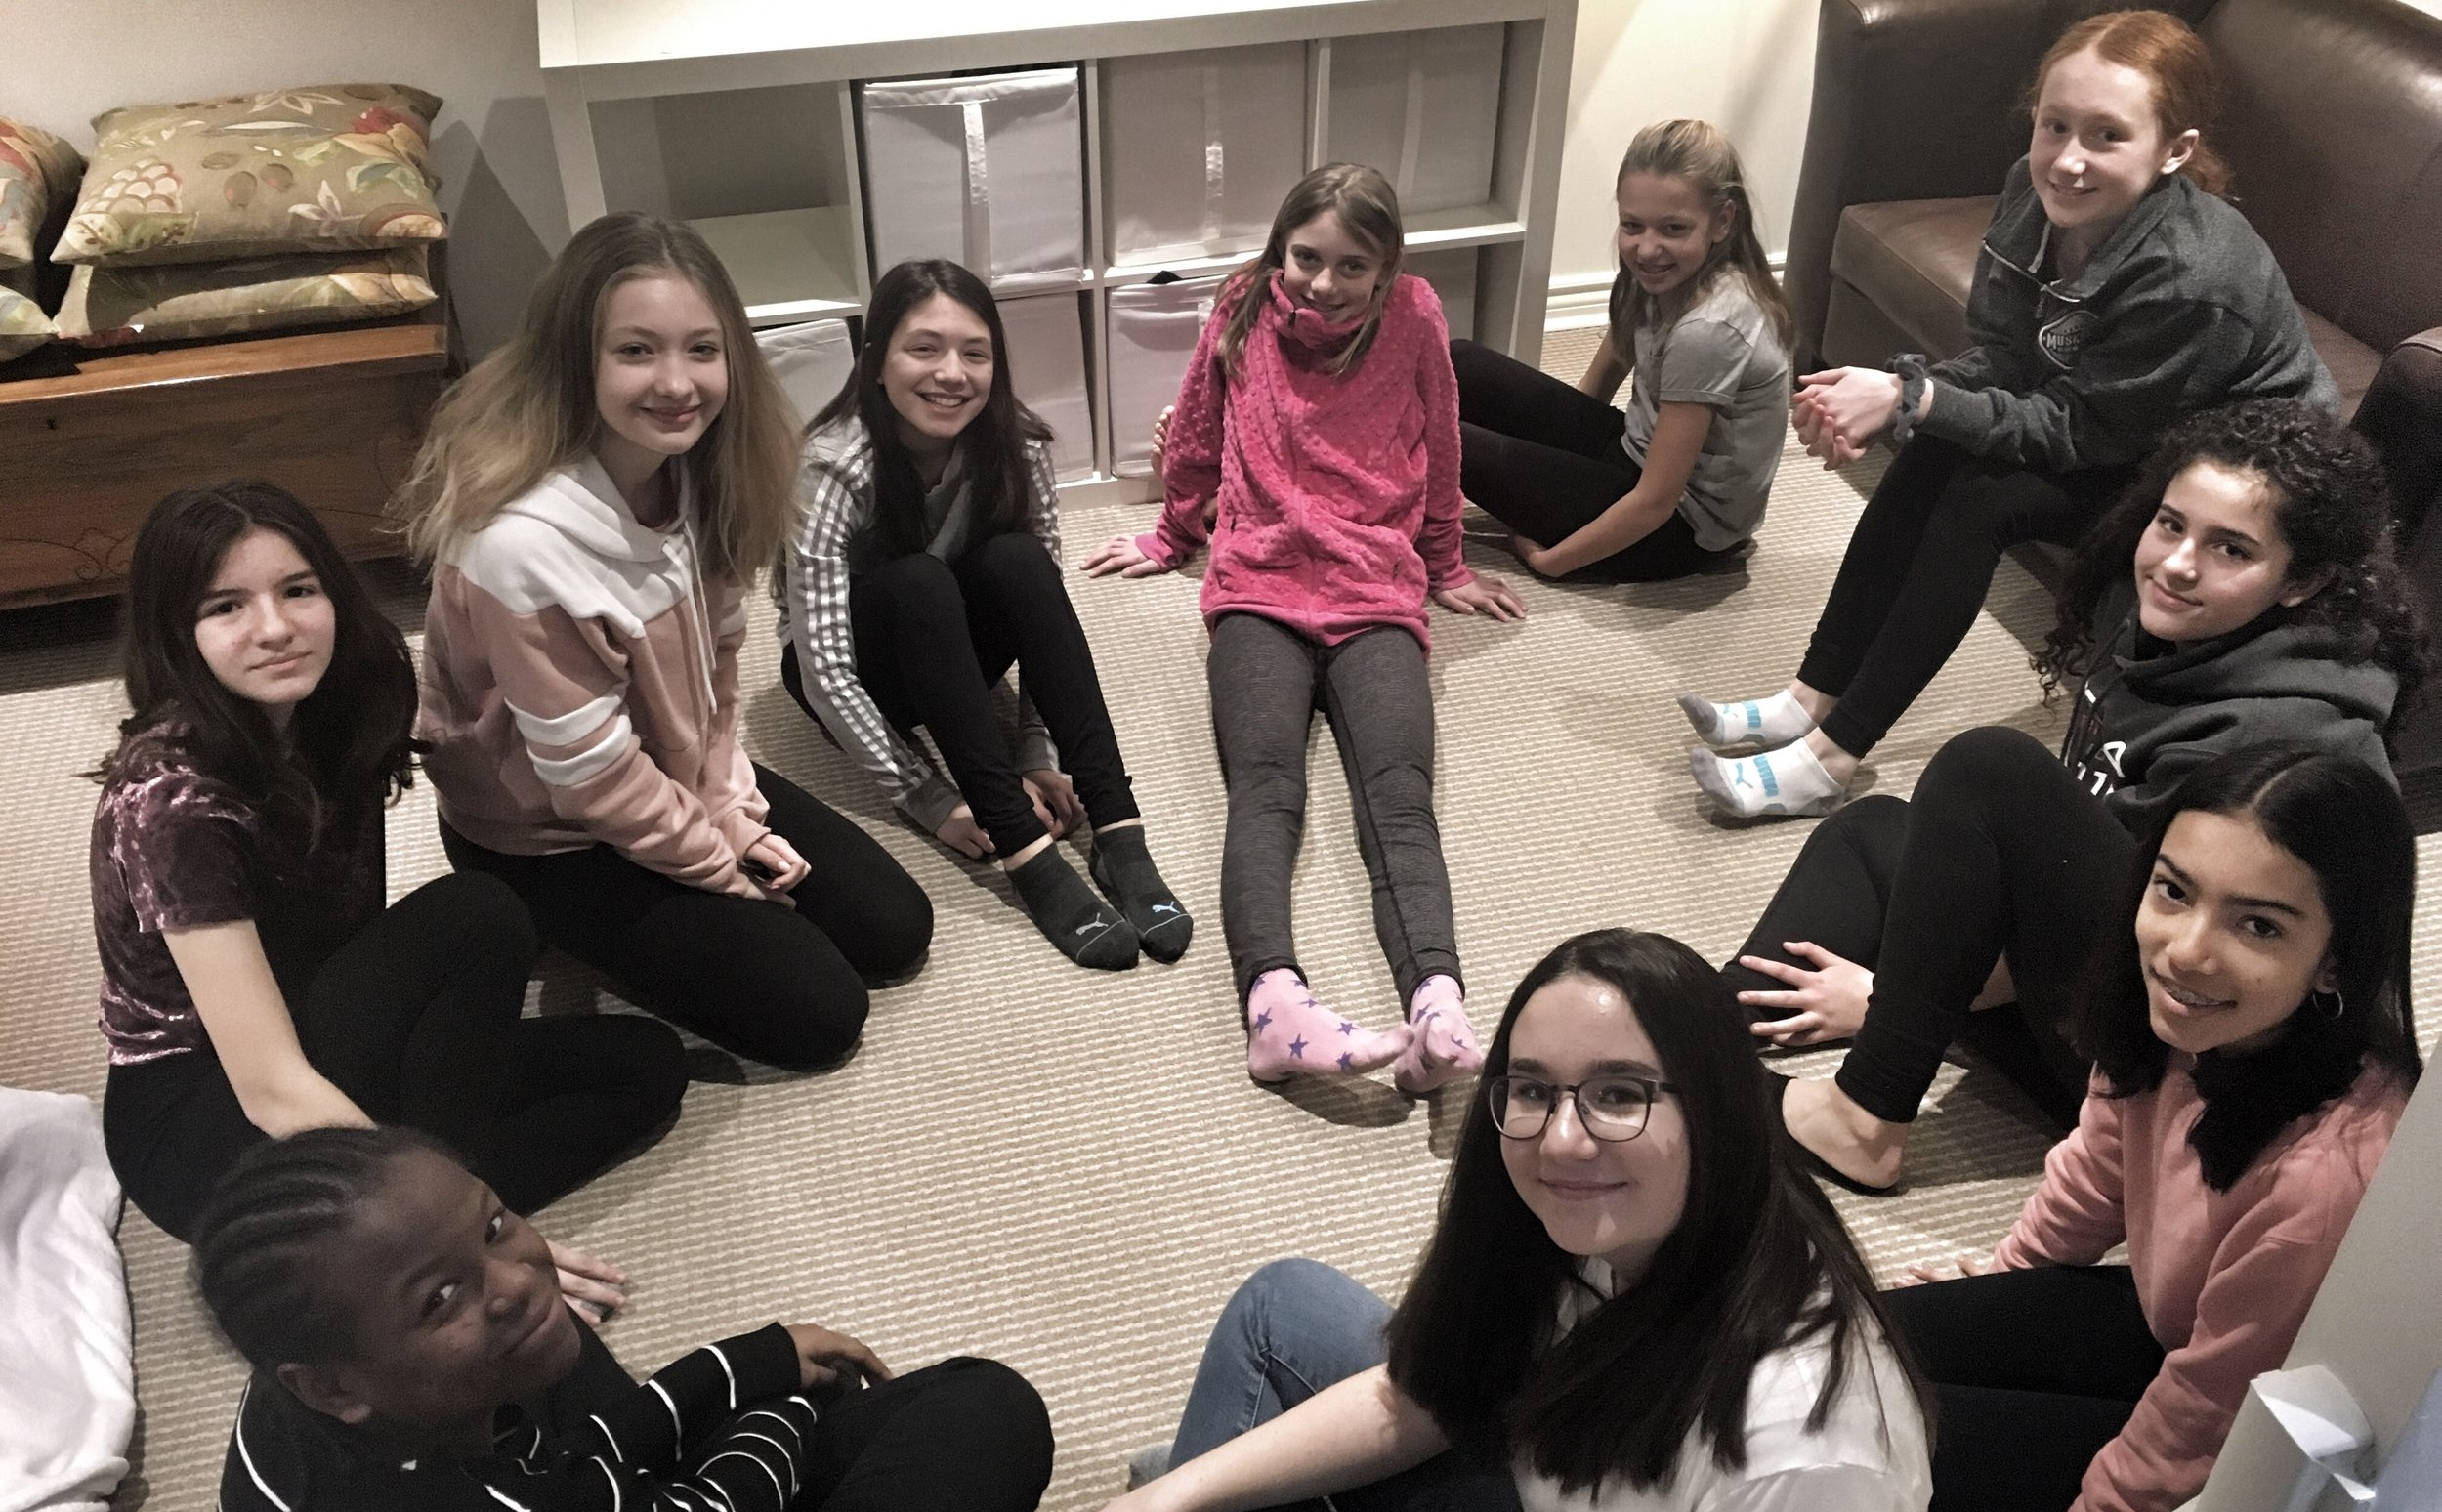 February 2019. Girls U13 (born in 2006) Team Meeting and Social. Getting ready for Summer 2019 CSL division. Congratuations to the Girls 2006 Energy team for qualifying into the CSL.